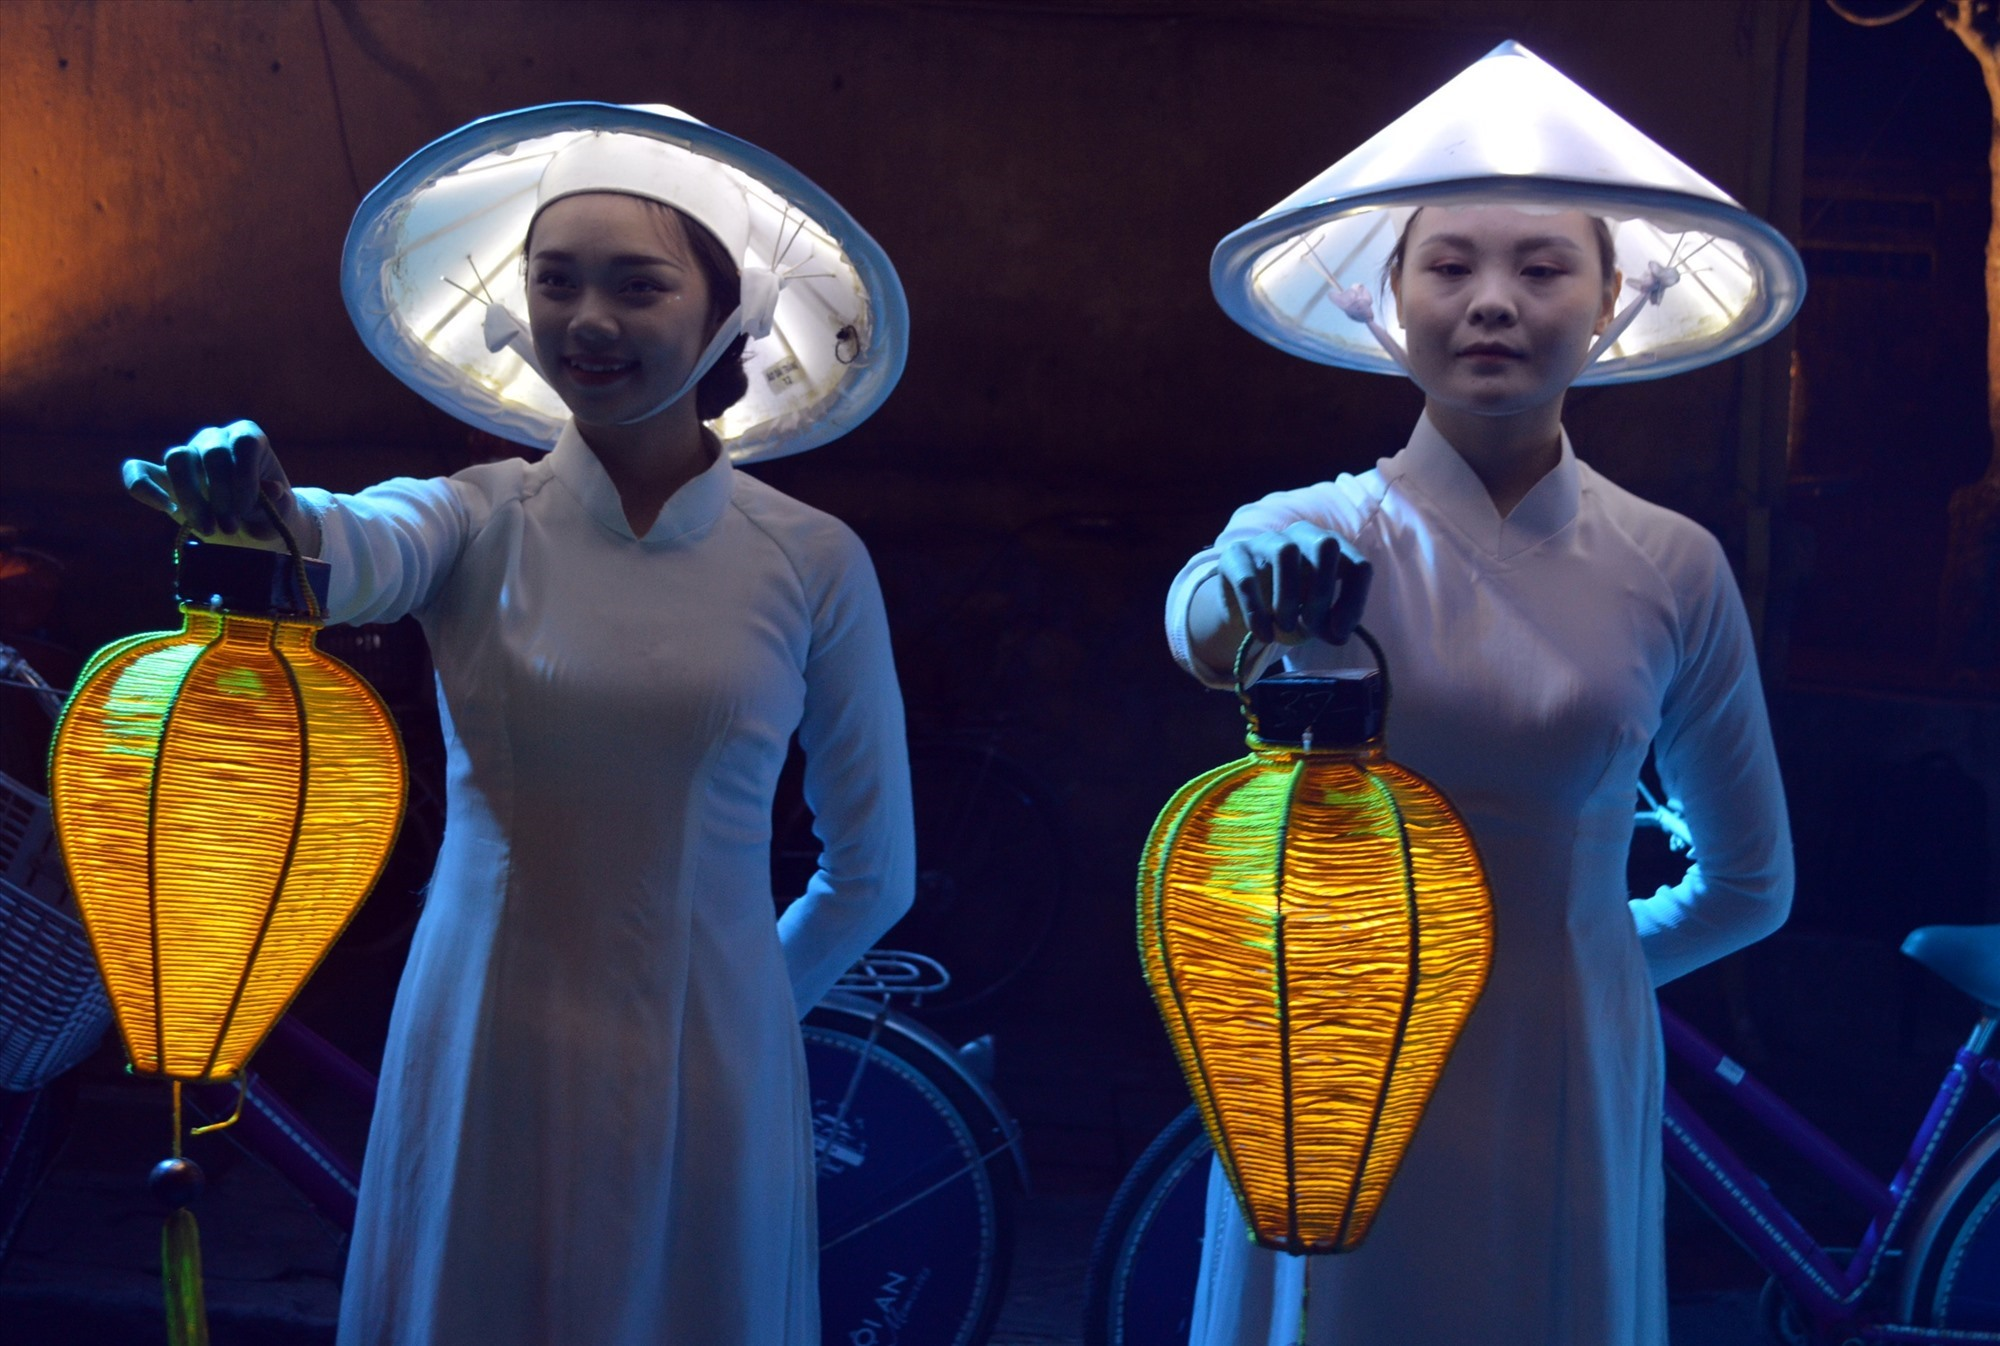 A scene in the Hoi An memories show